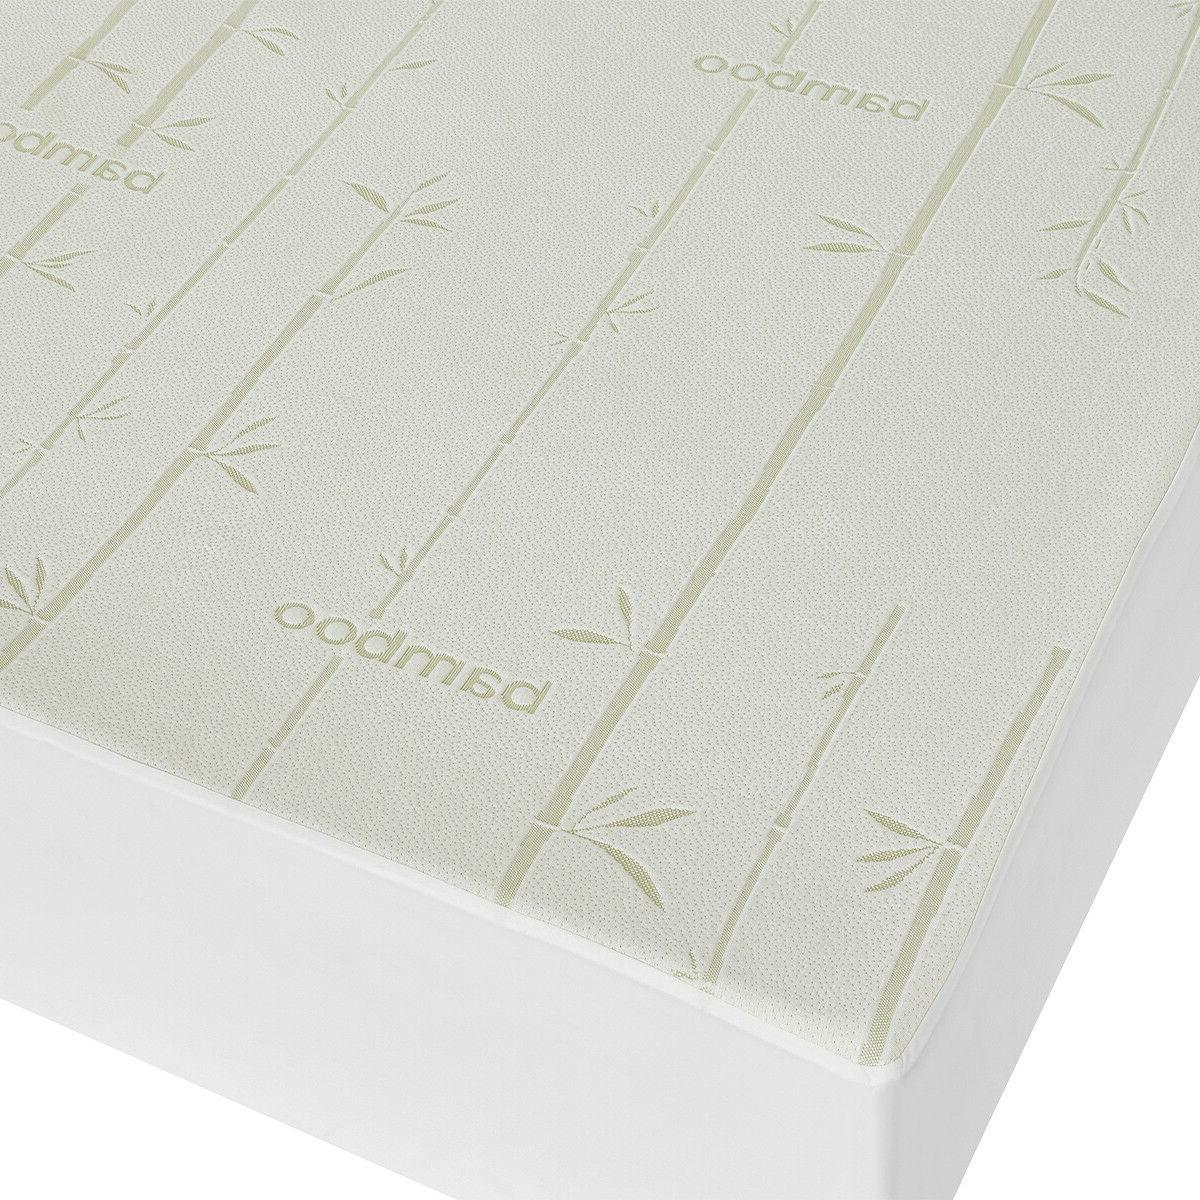 Bamboo Waterproof Mattress Soft Antibacterial